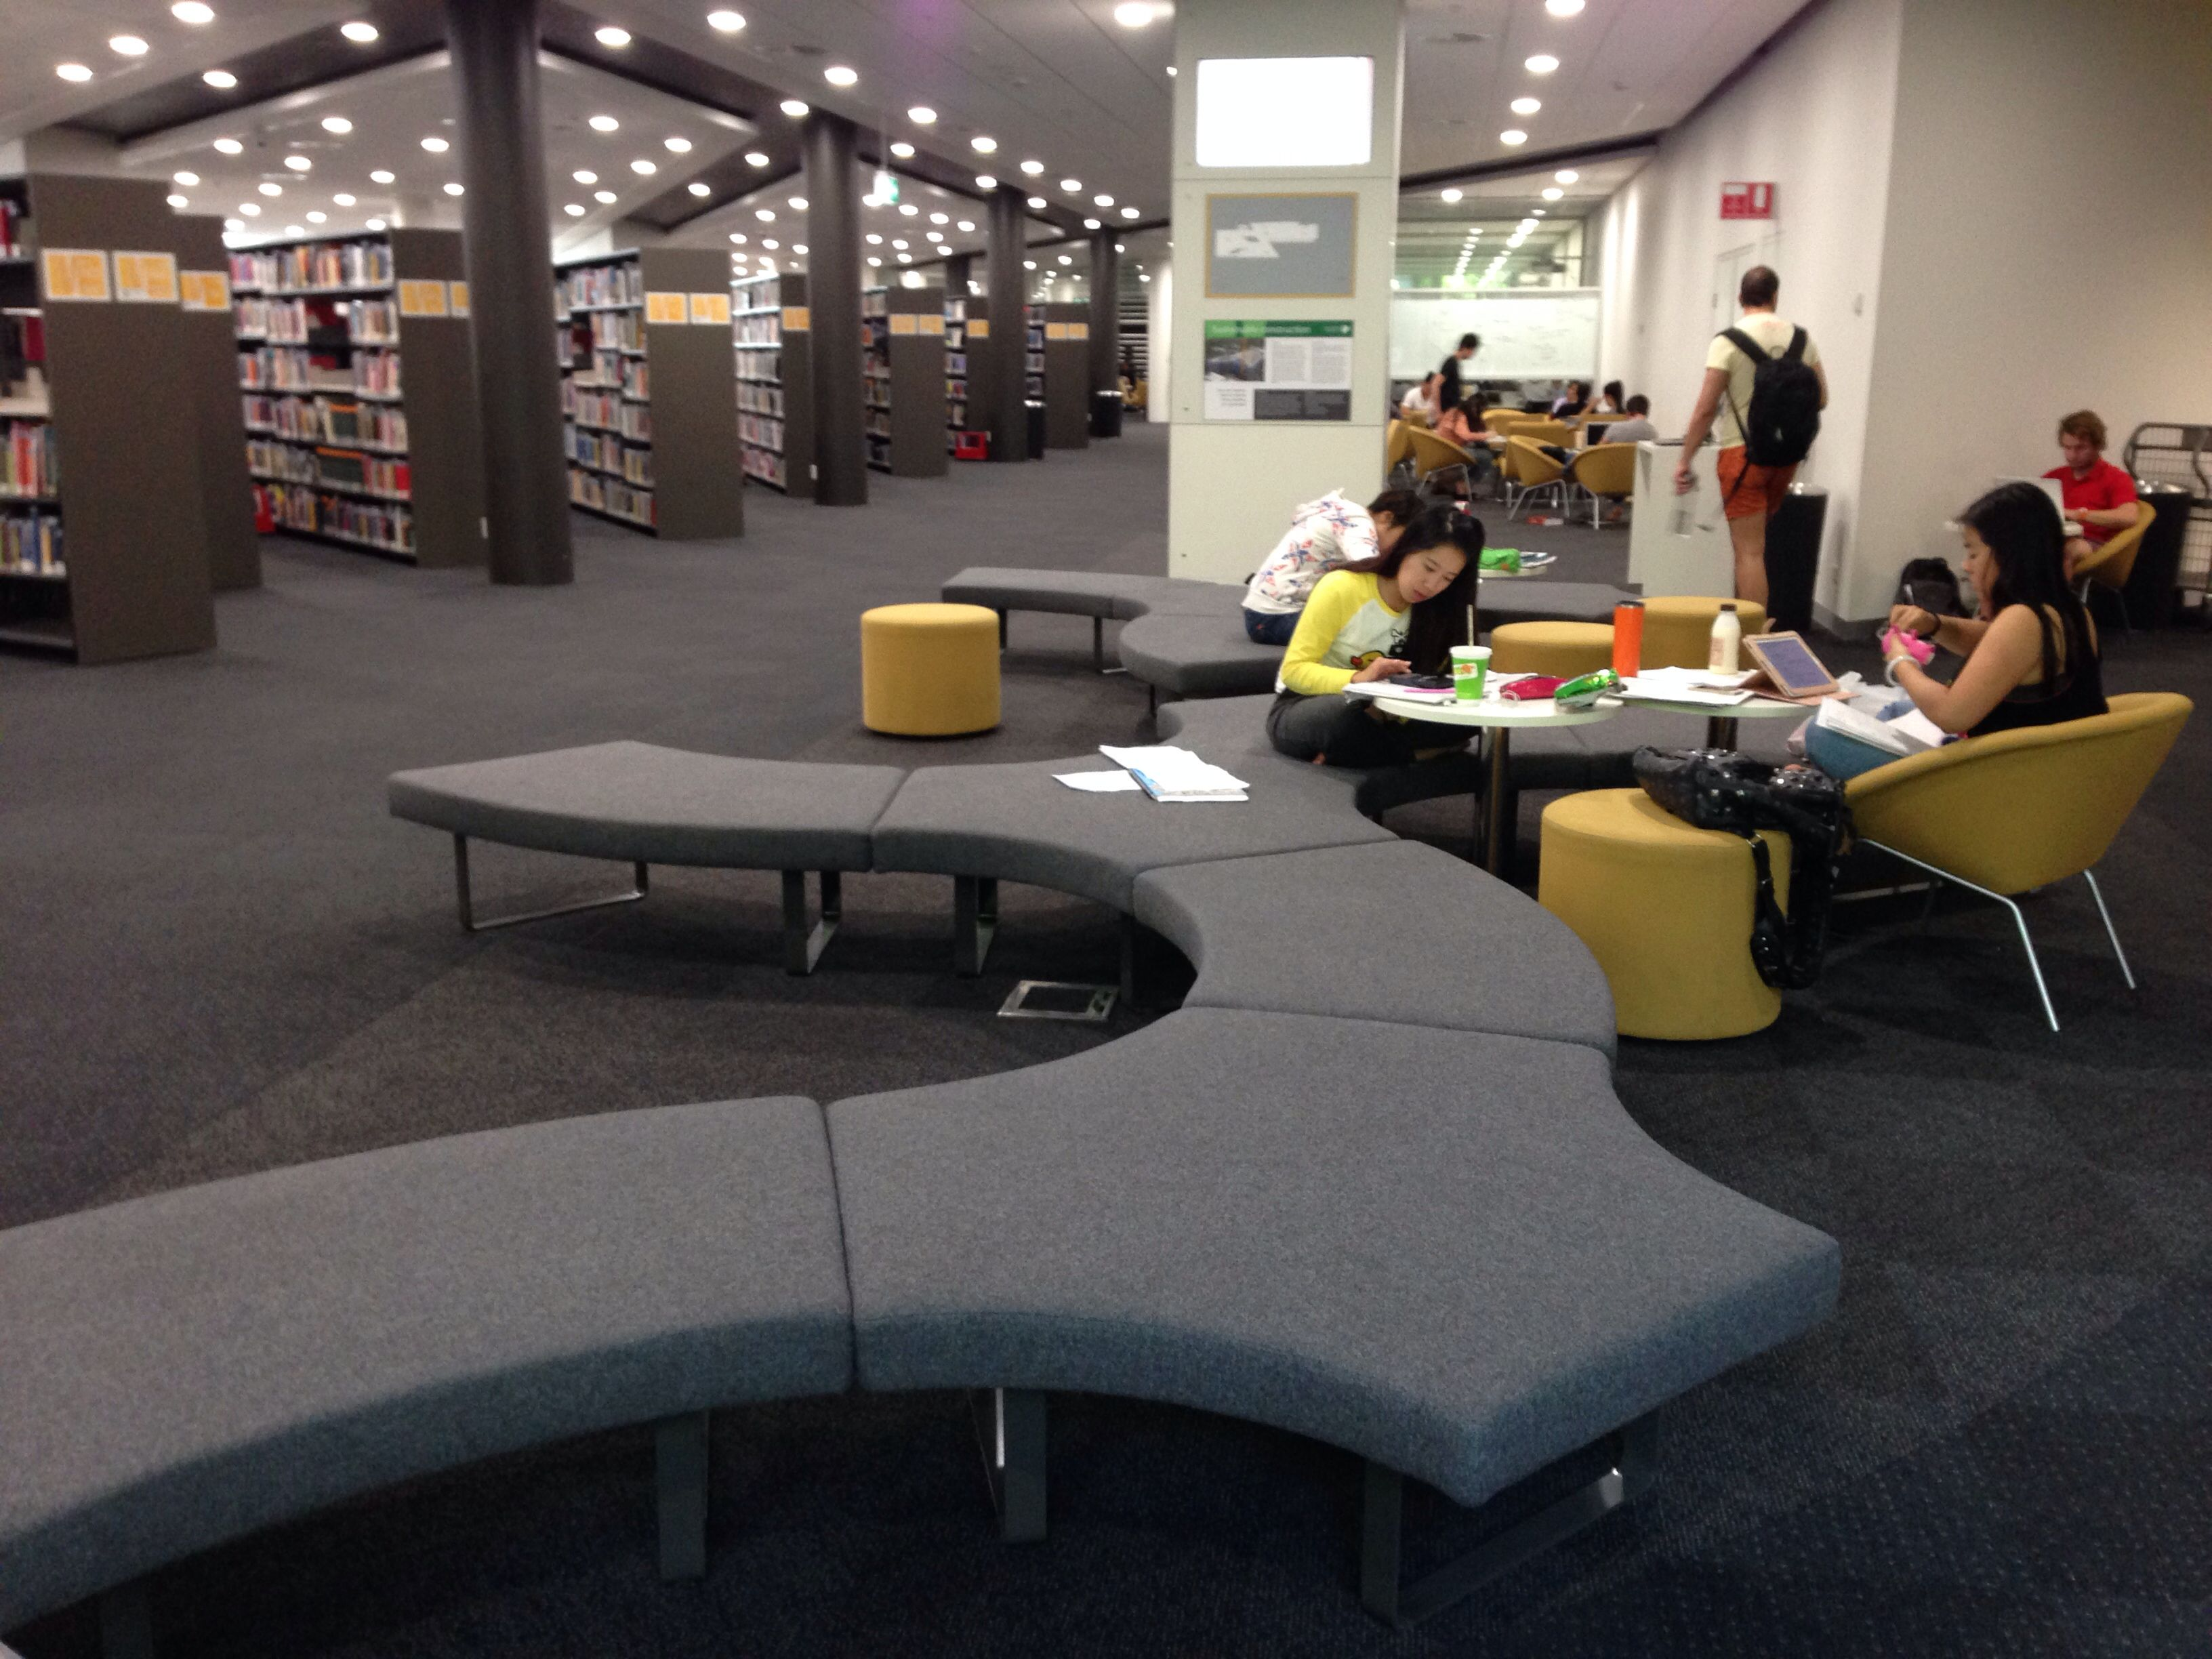 Macquarie university library lounge area library design pinterest lounge areas office - Library lounge chairs ...